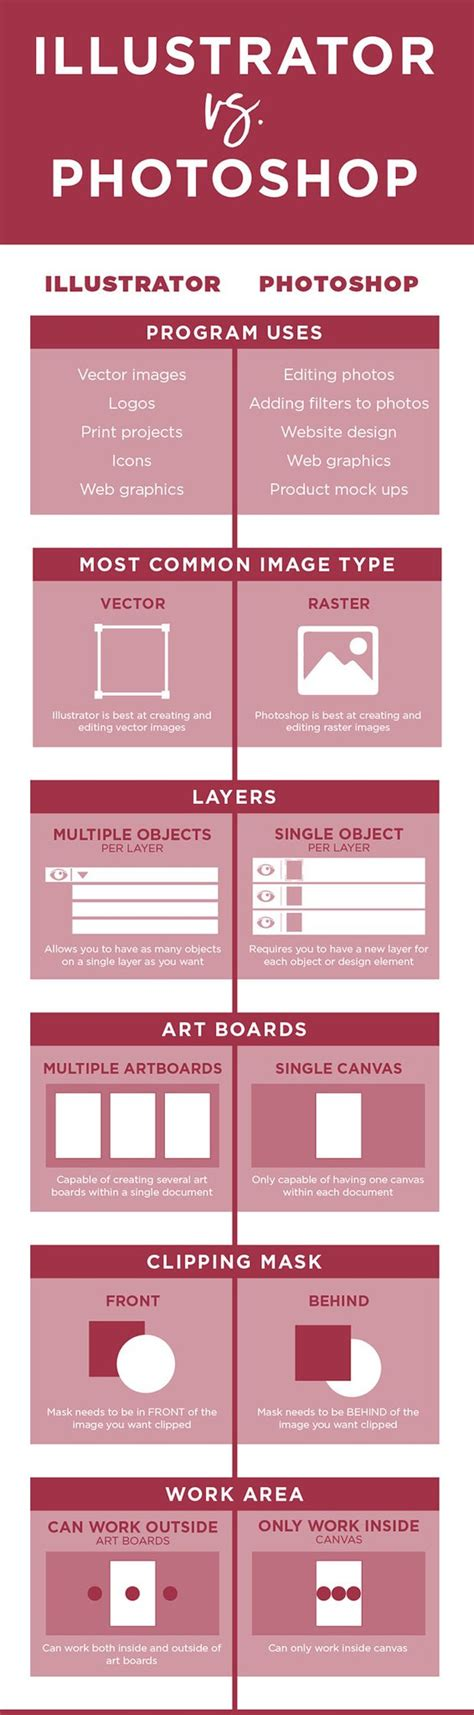 when to use adobe illustrator vs photoshop vs indesign photoshop vs illustrator when you should use which